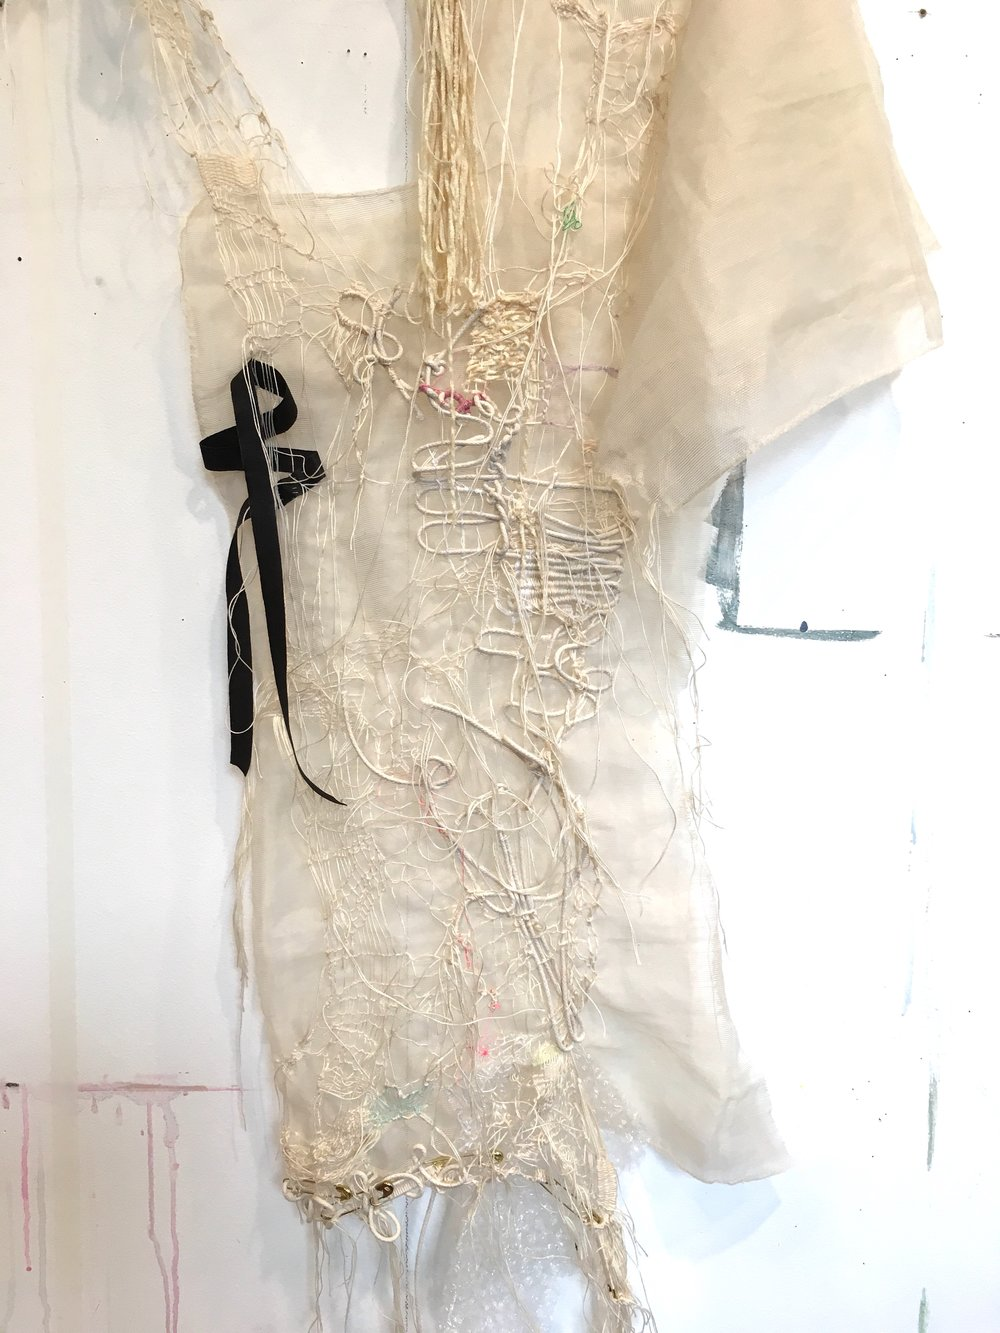 Dissent #17 (thread, cord, mesh, bubble wrap, old lace, seam binding, safety pins, elastic, foam)